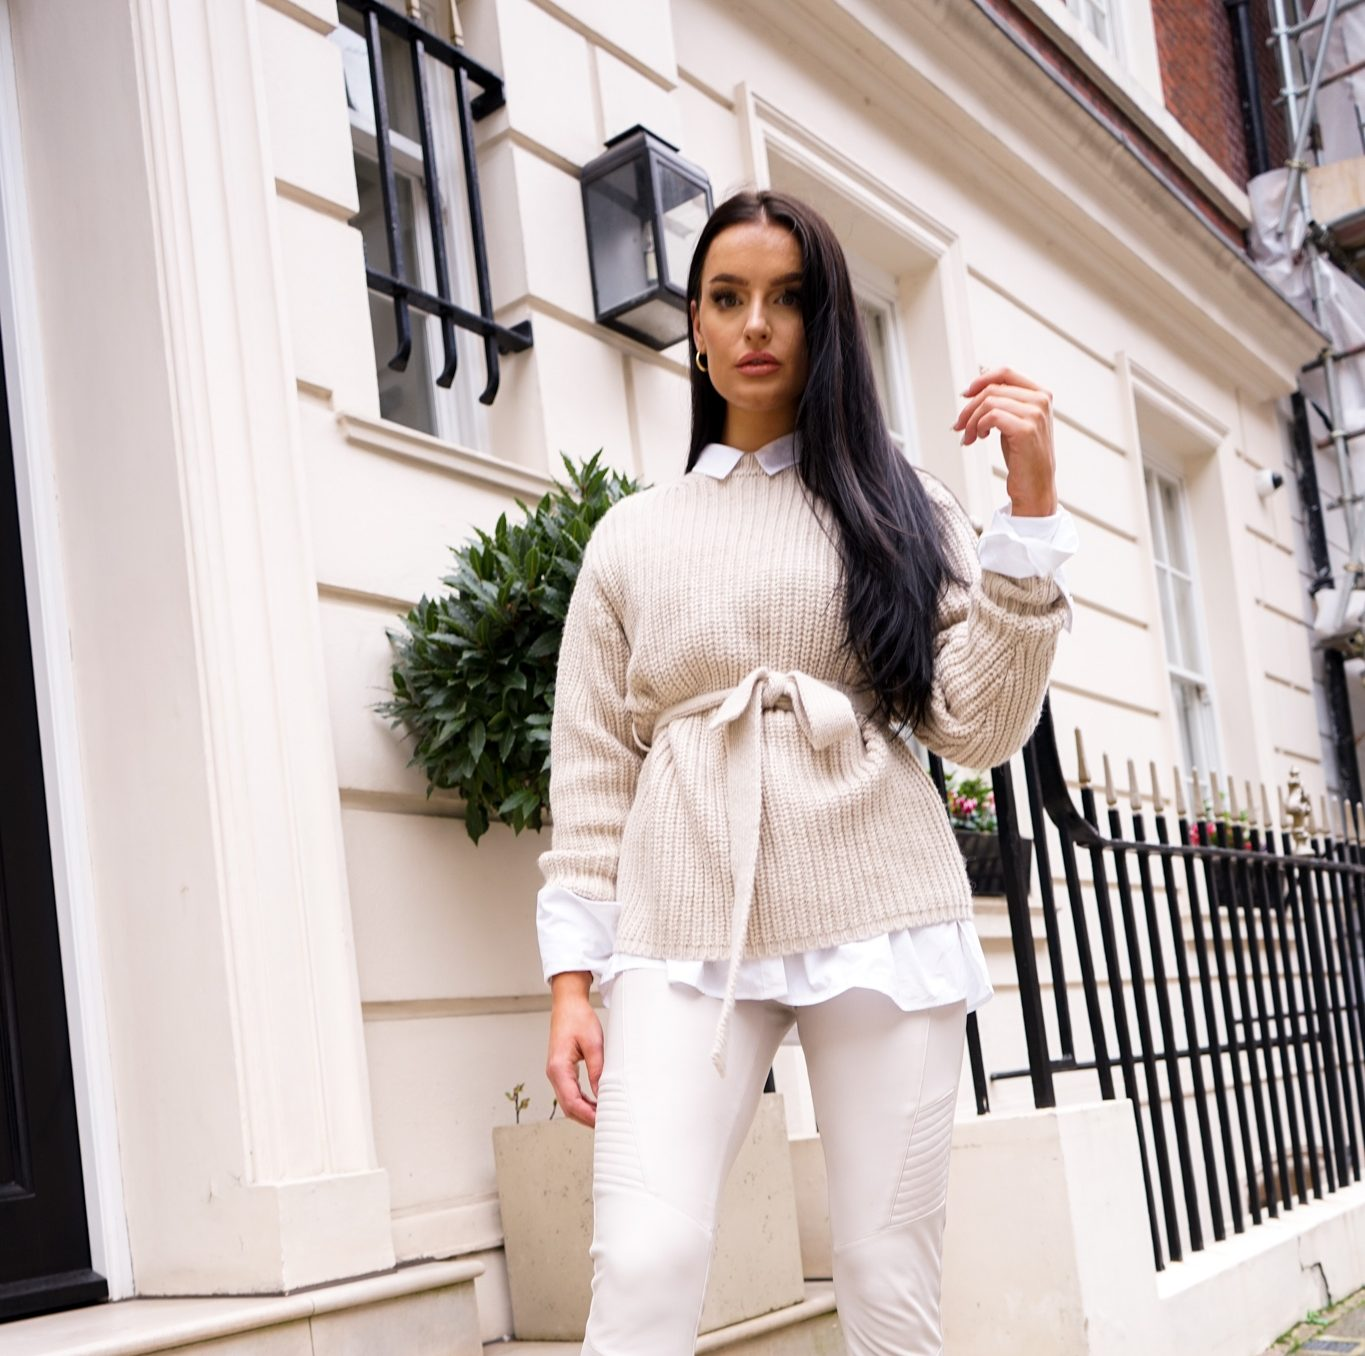 influencer posing in gifted clothes